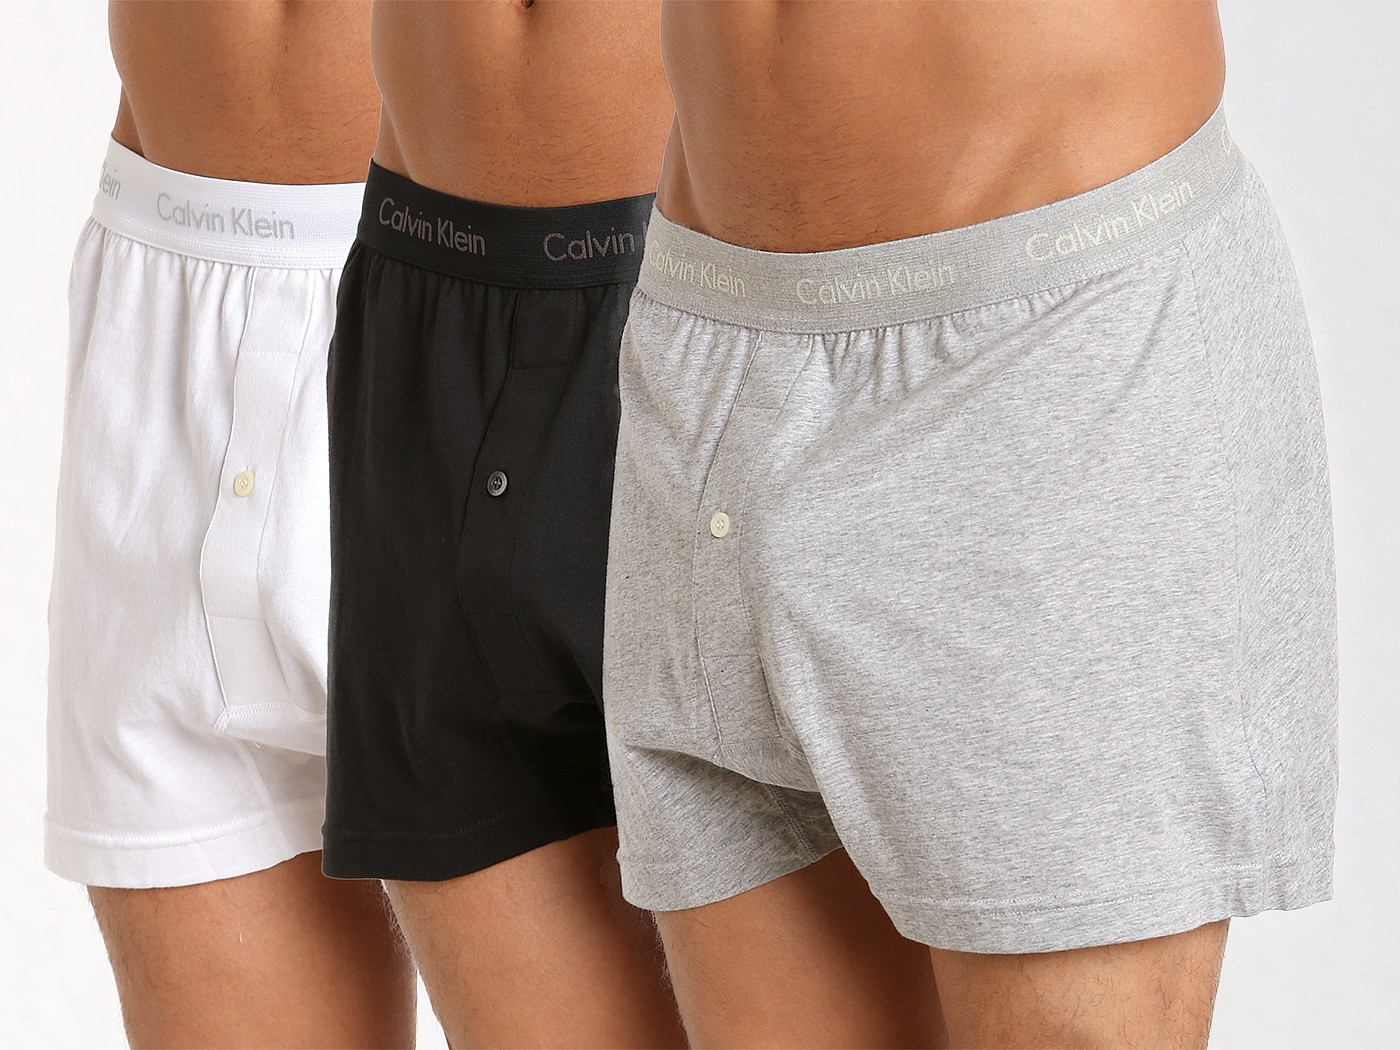 cf1f634e33c9 You may also like: Calvin Klein Cotton Classics Knit Boxer 3-Pack Grey/